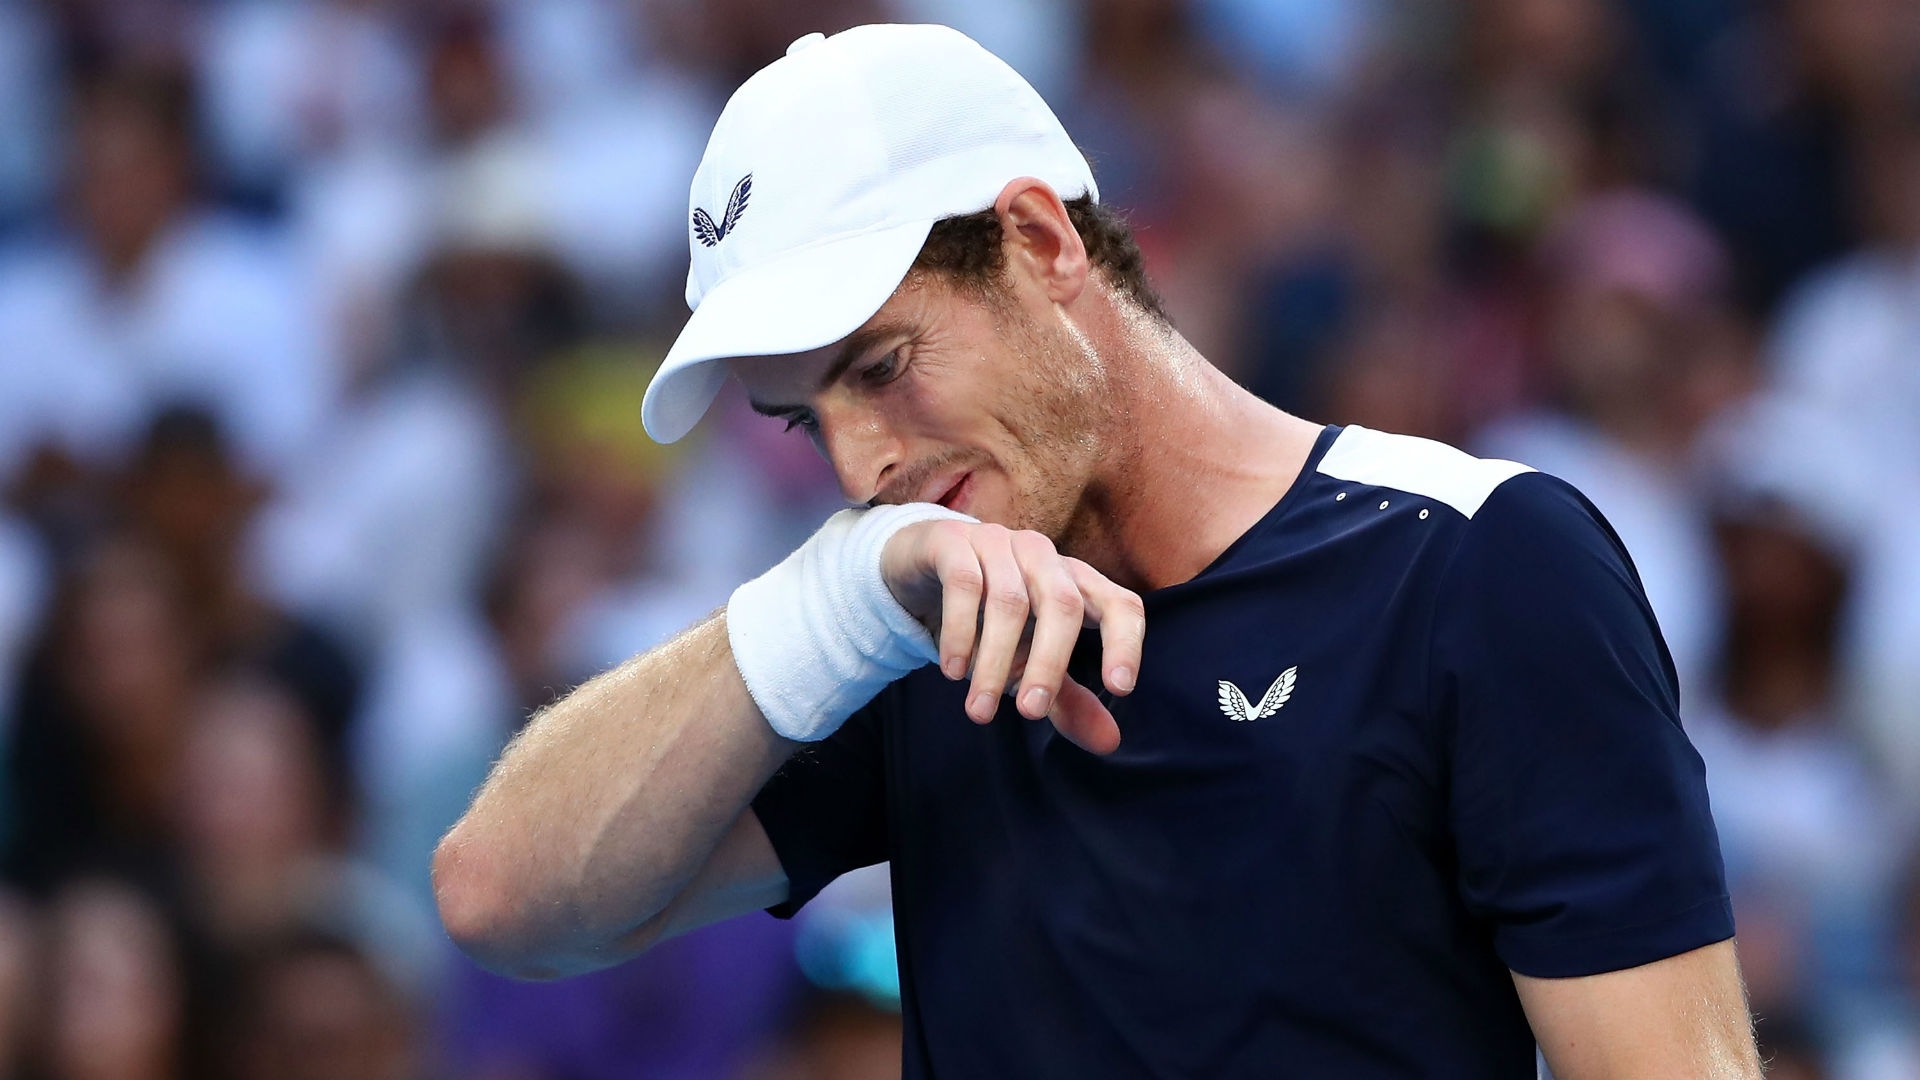 Murraycropped